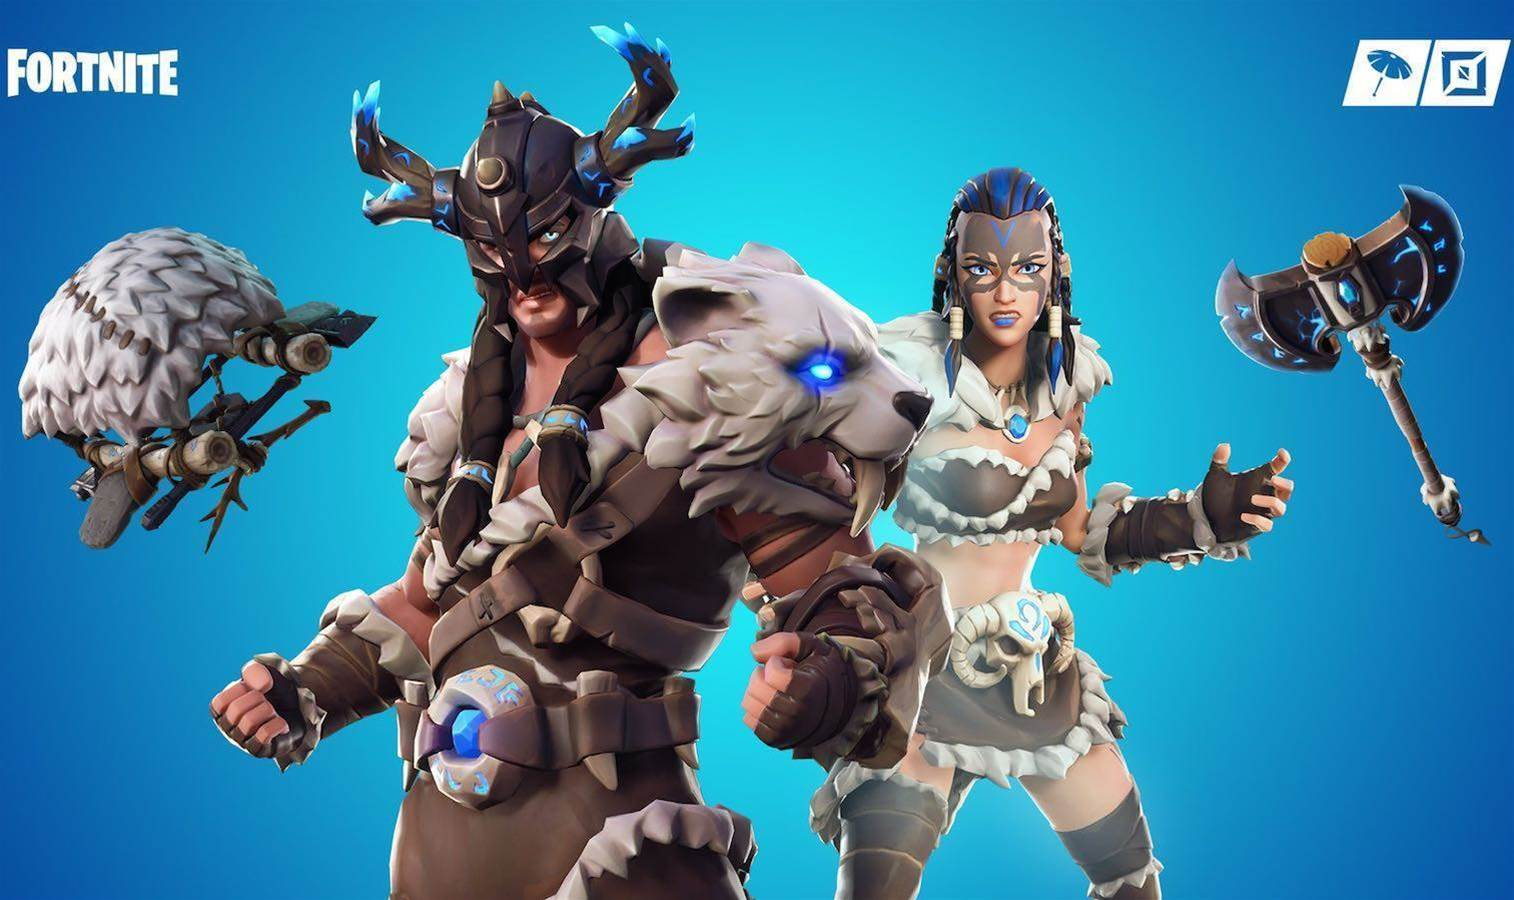 Fortnite leaks gamers' credentials